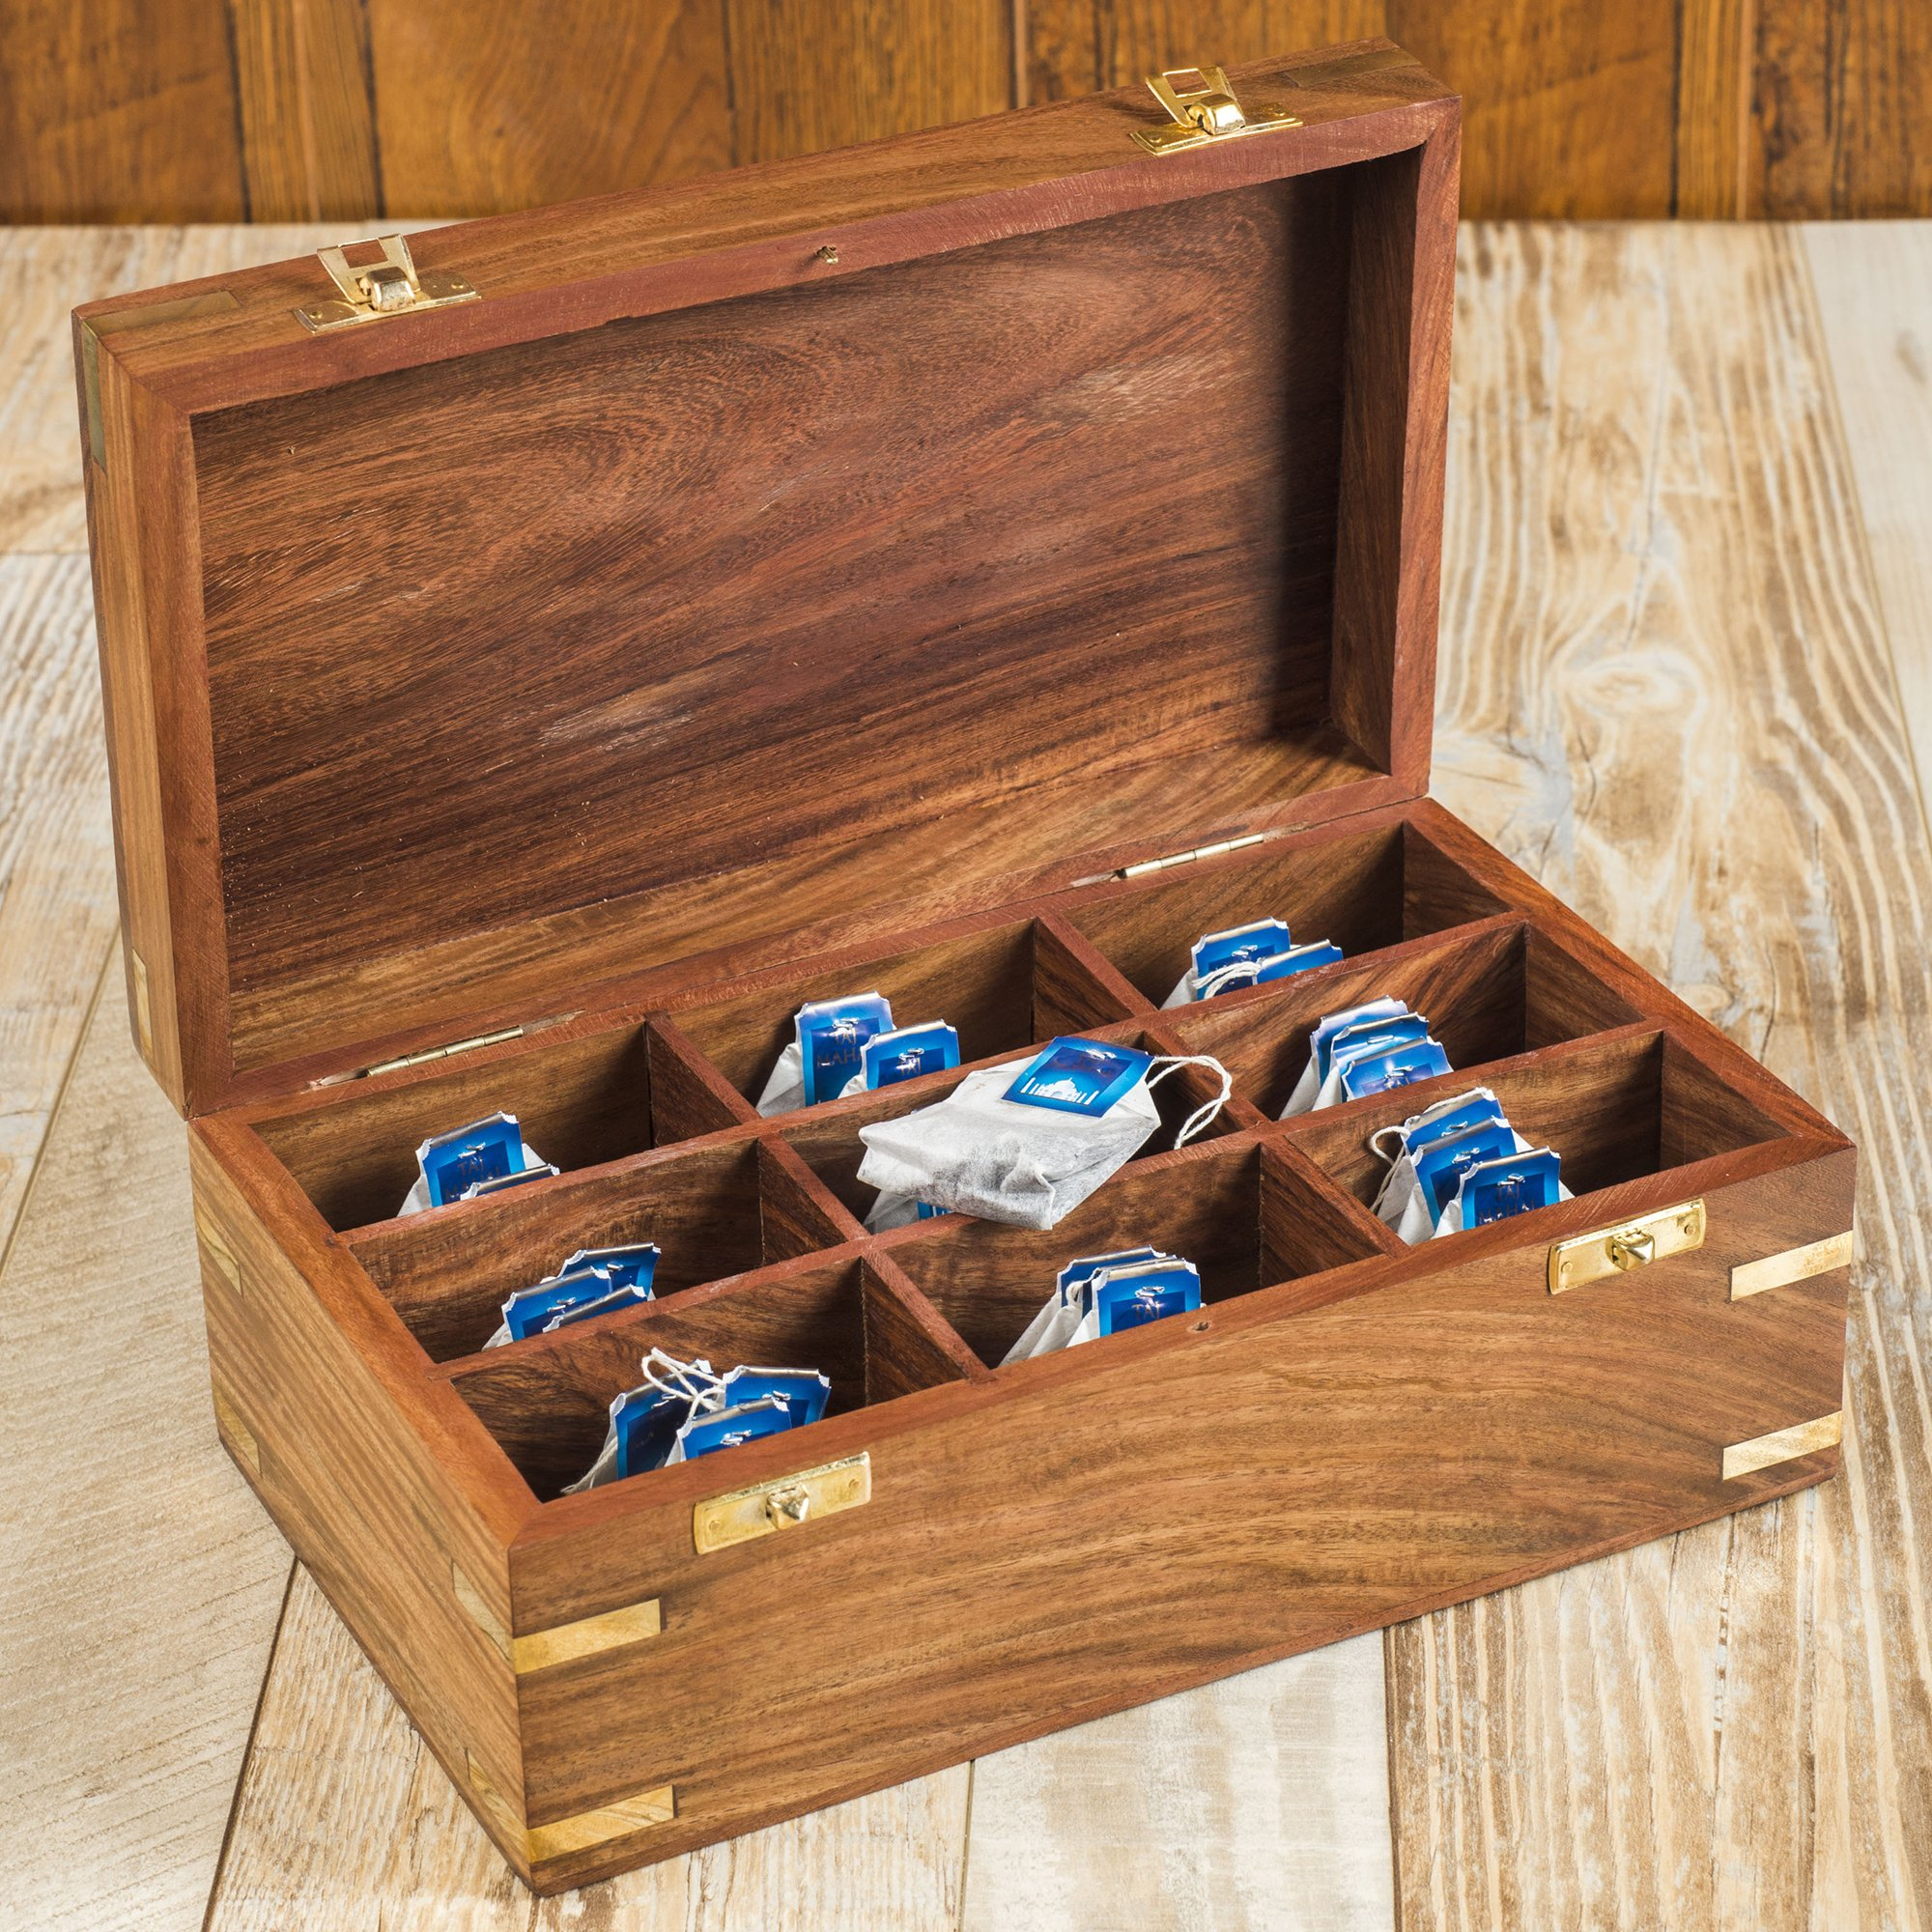 Rusticity Wood Tea Bag/Spice Storage Box with Lid and 9 pockets | Handmade | (10.2 x 6.2 x 4 in) by Rusticity (Image #1)